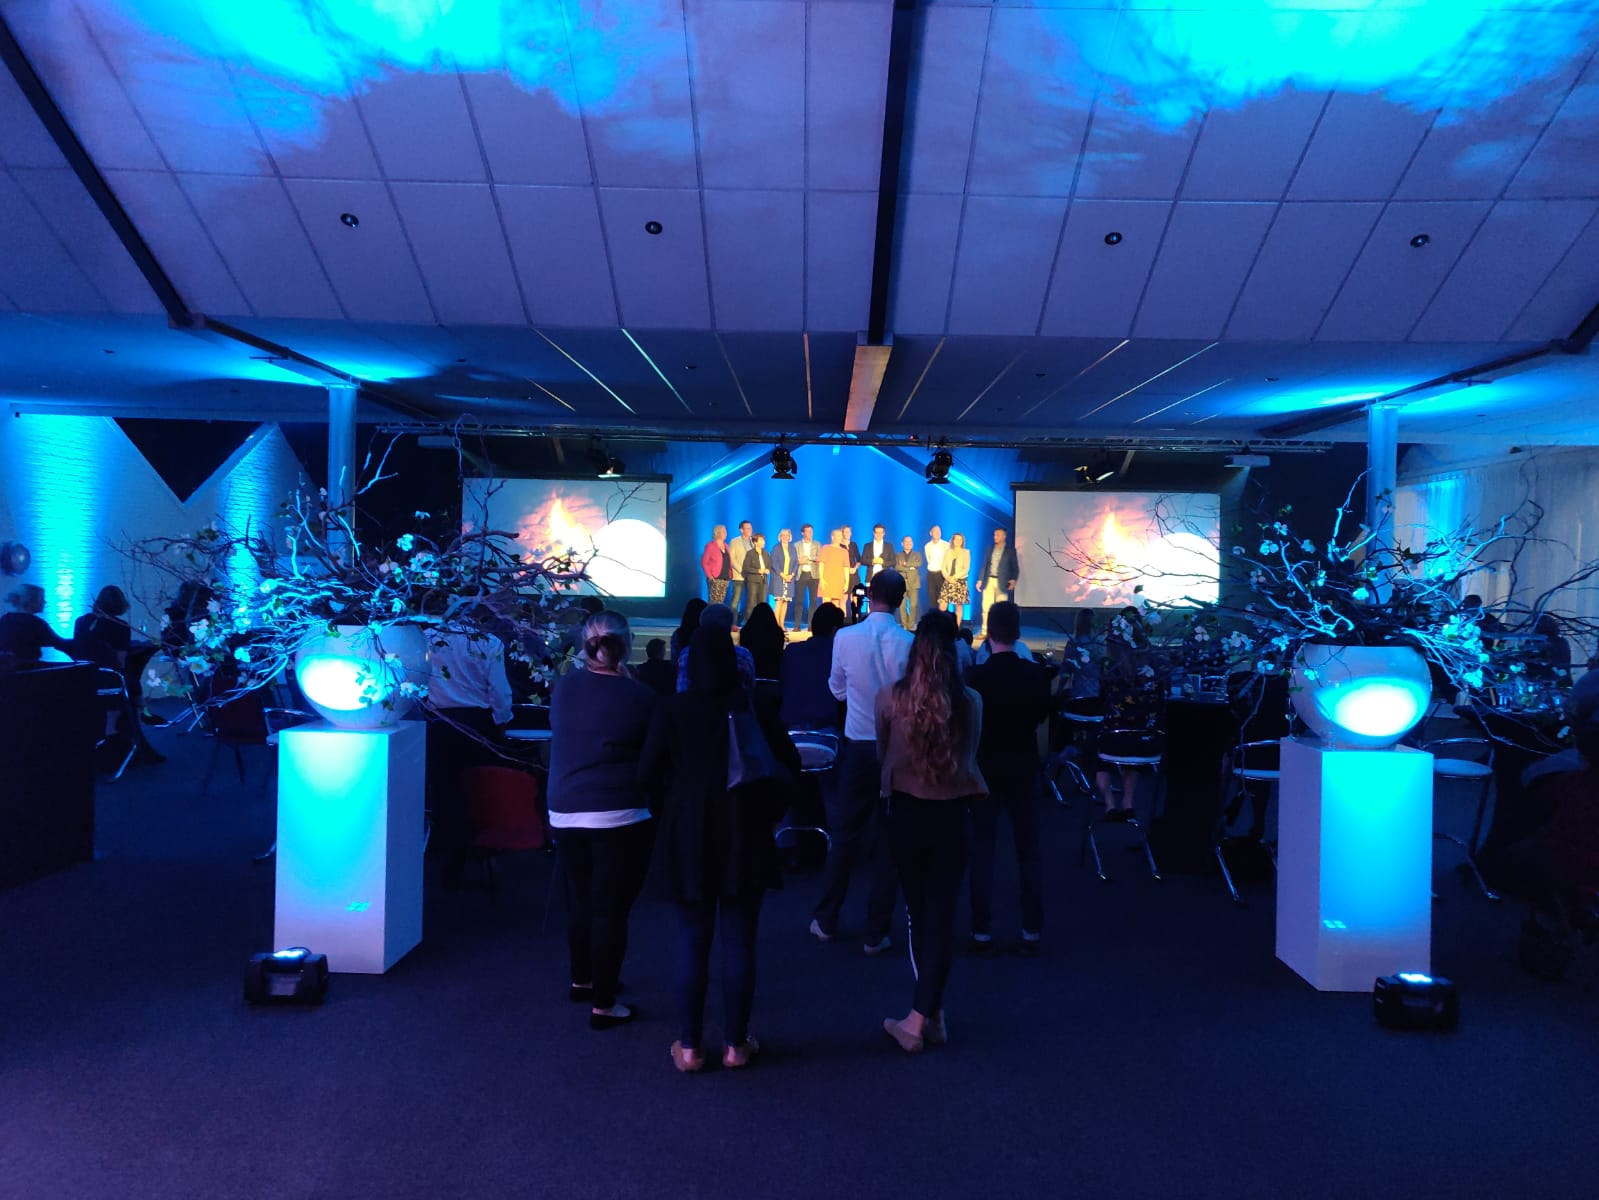 Mylan total event care projectmanagement bedrijfsevenement bedrijfsevent bijeenkomst business businessevent catering congres corporate evenement evenementenorganisatie kick off laten meeting registratie techniek nederland show